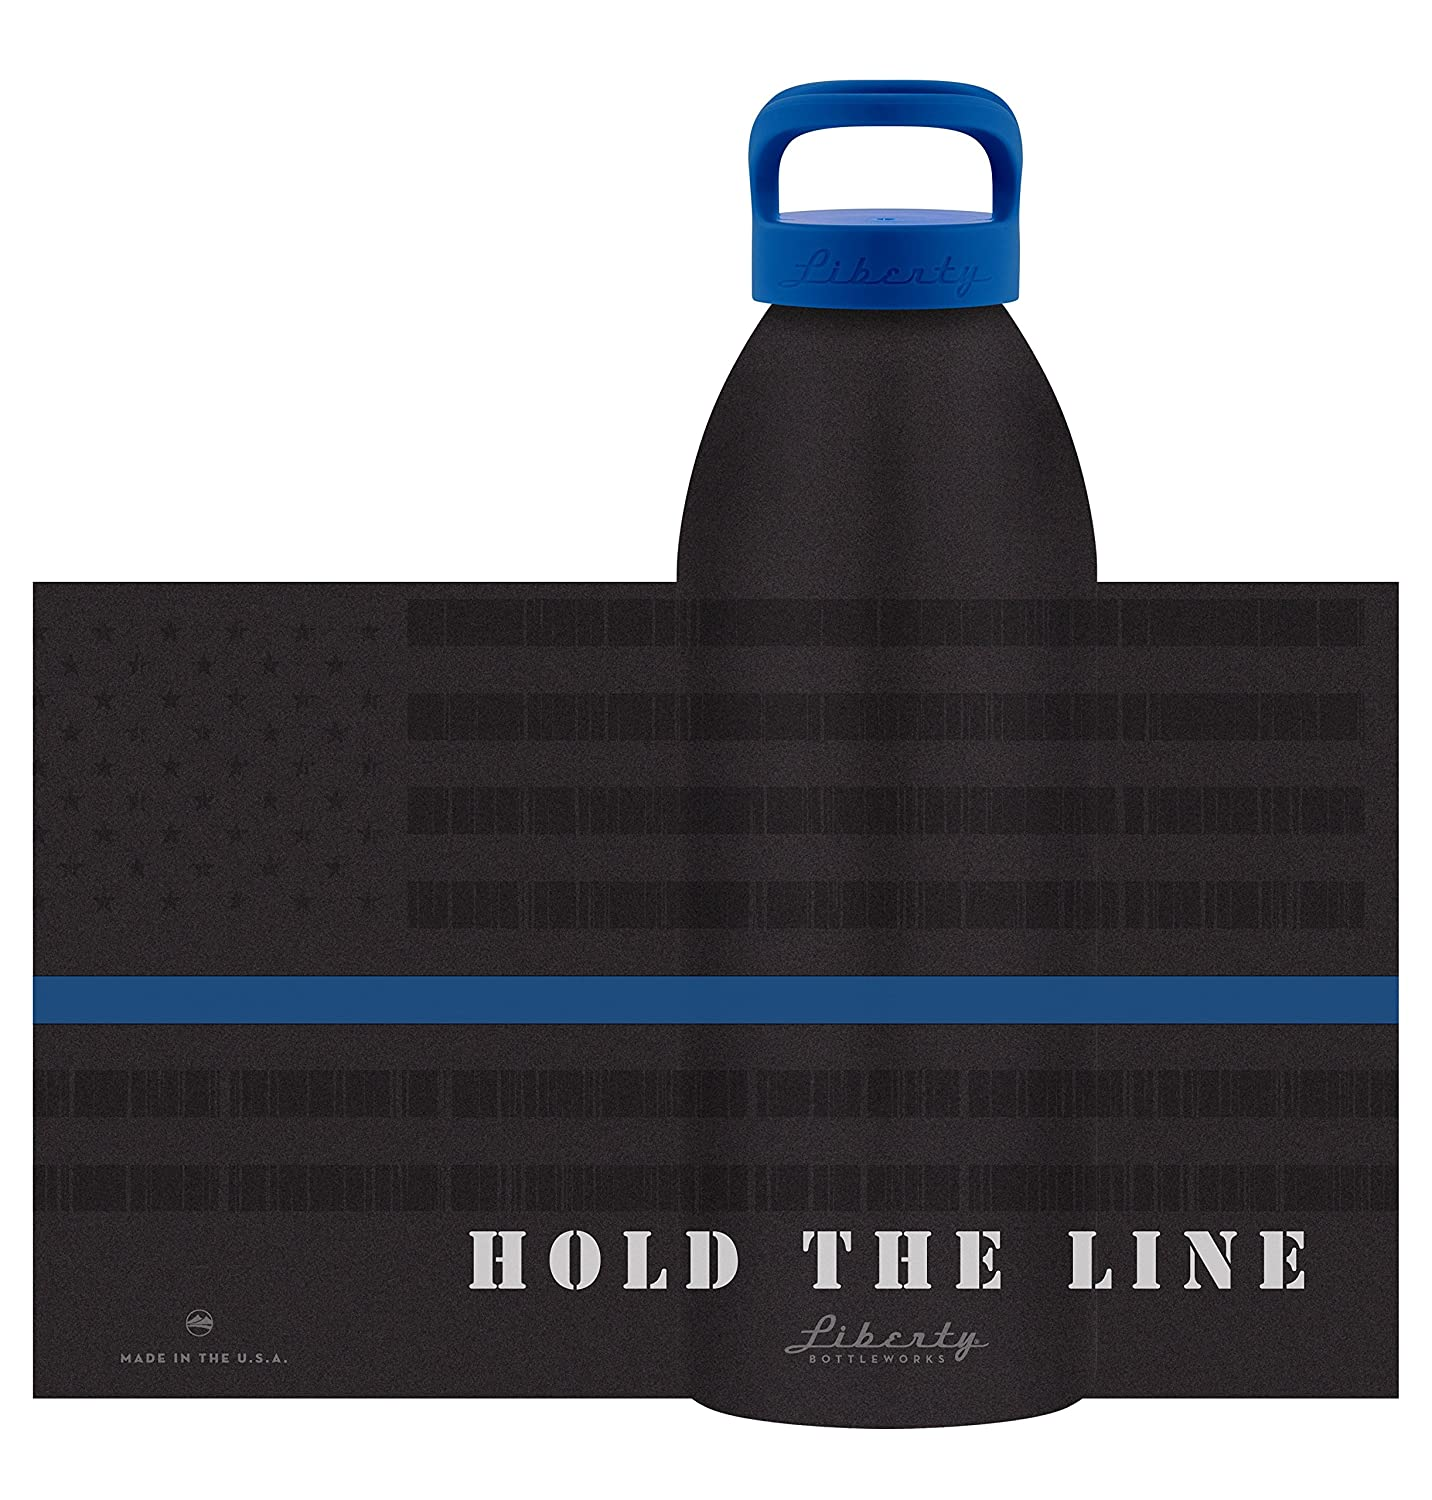 Made in USA Liberty Bottleworks Hold The Line Aluminum Water Bottle Blue Standard Cap